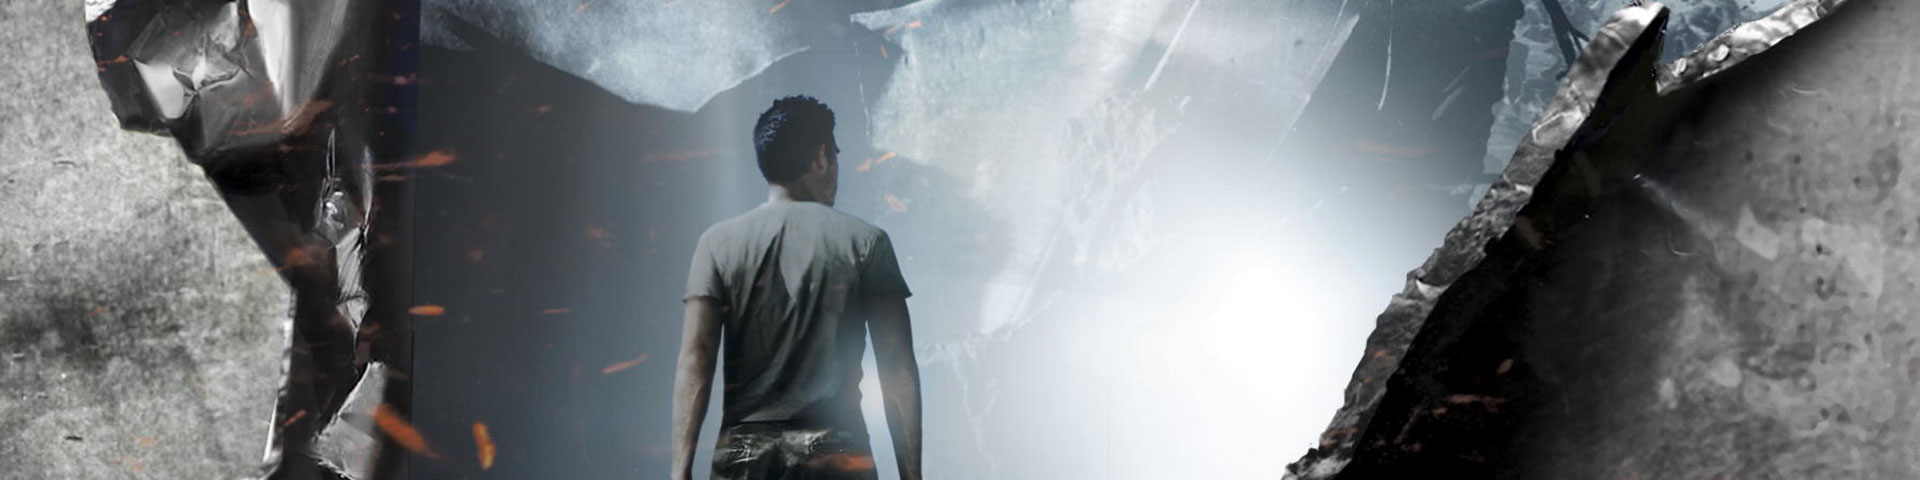 A man stands at the opening of a steel cavern. Light radiates from deeper within the cave.